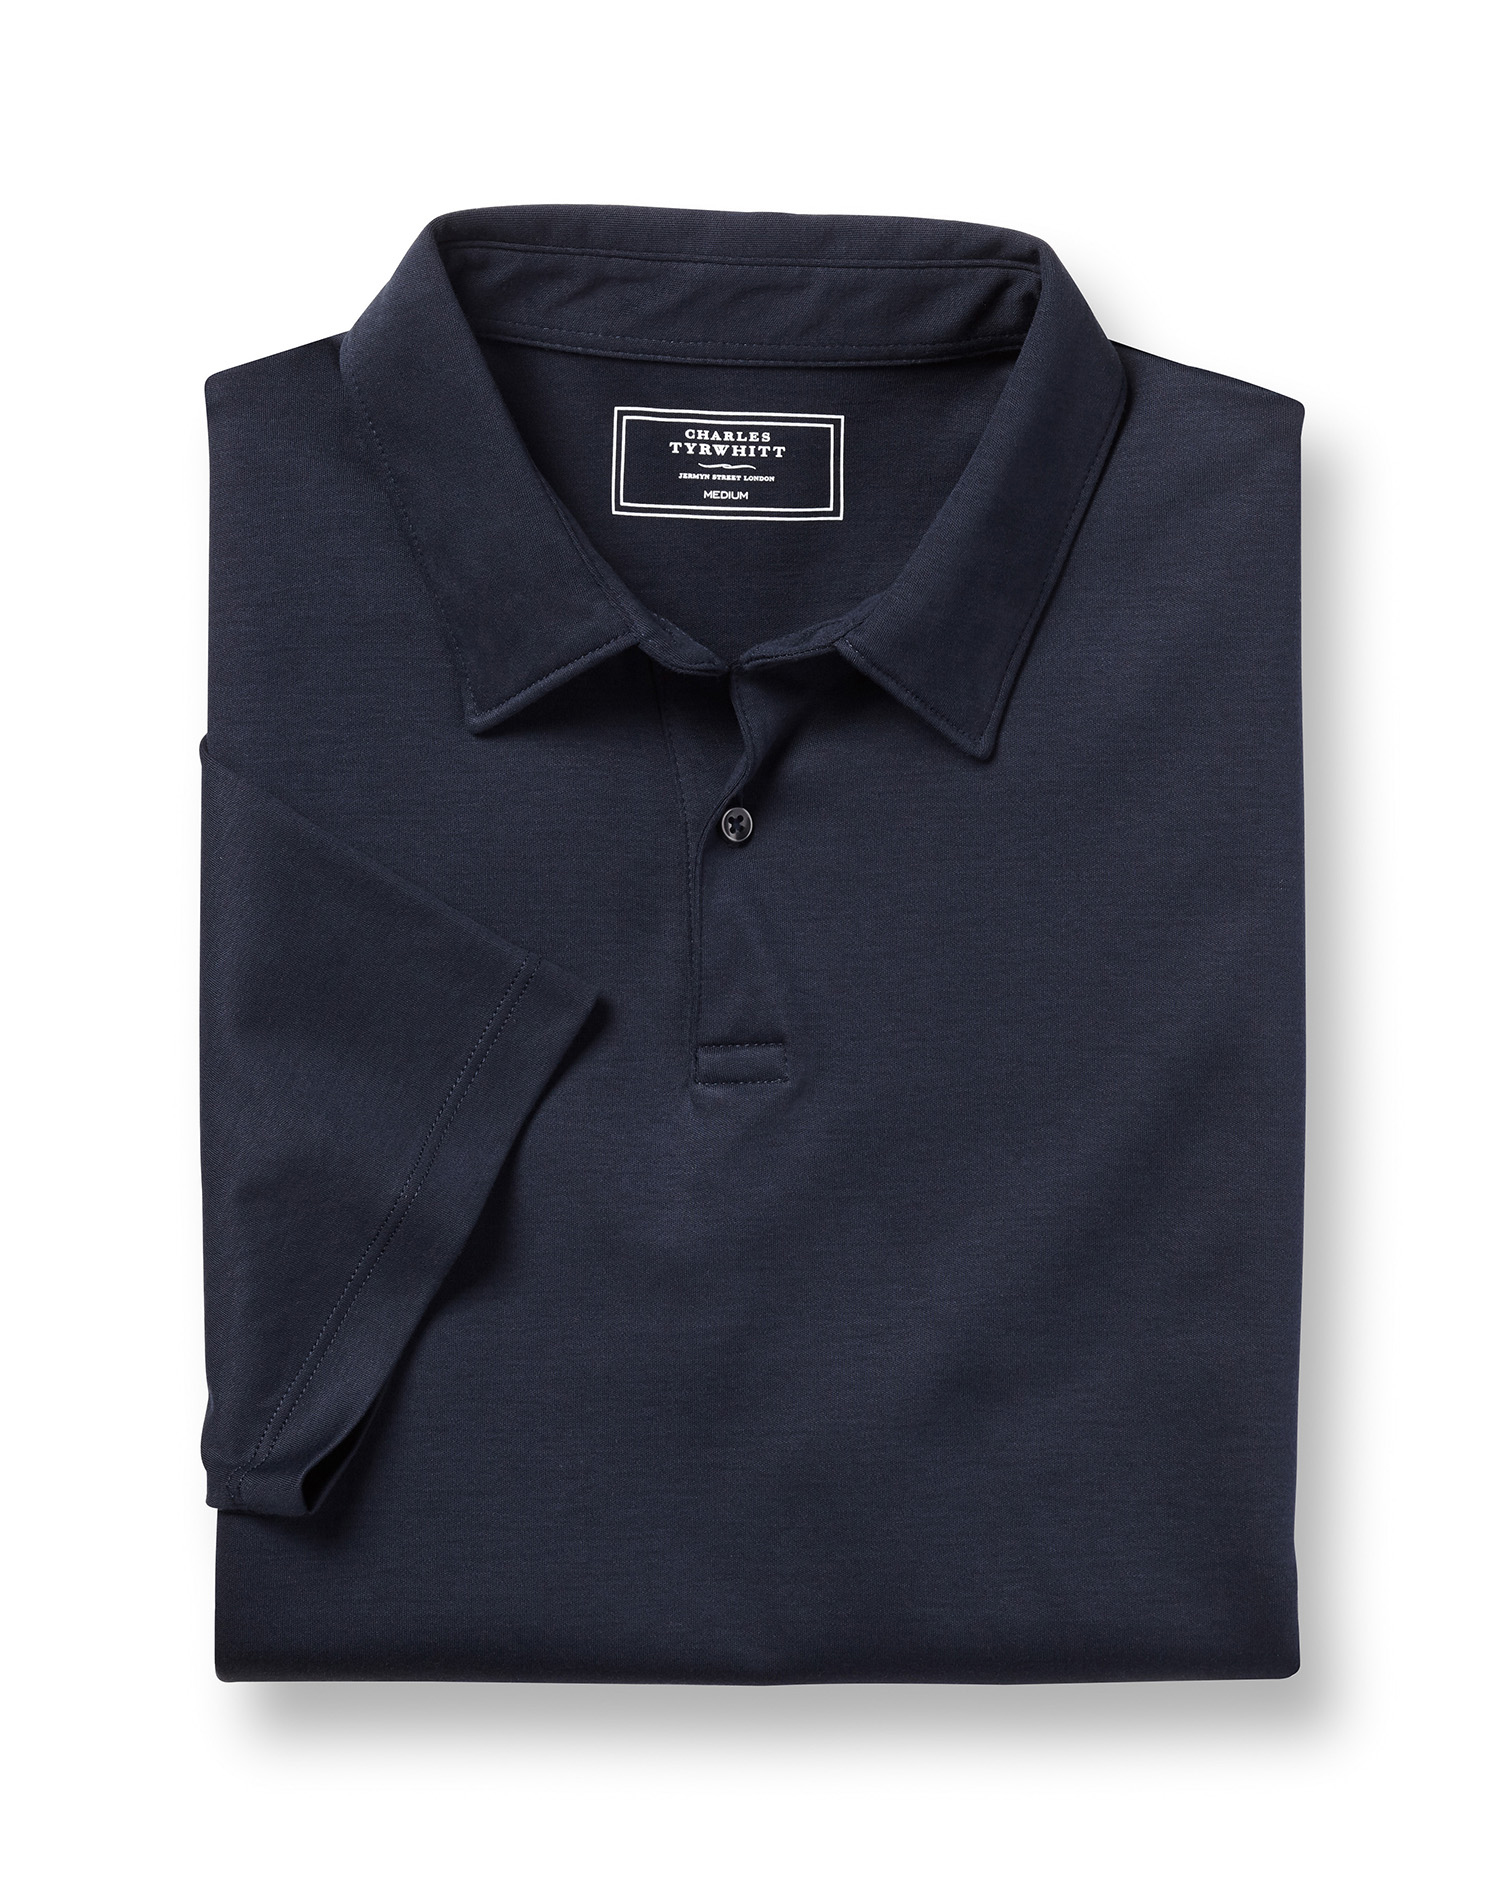 Plain Navy Jersey Cotton Polo Size Small by Charles Tyrwhitt